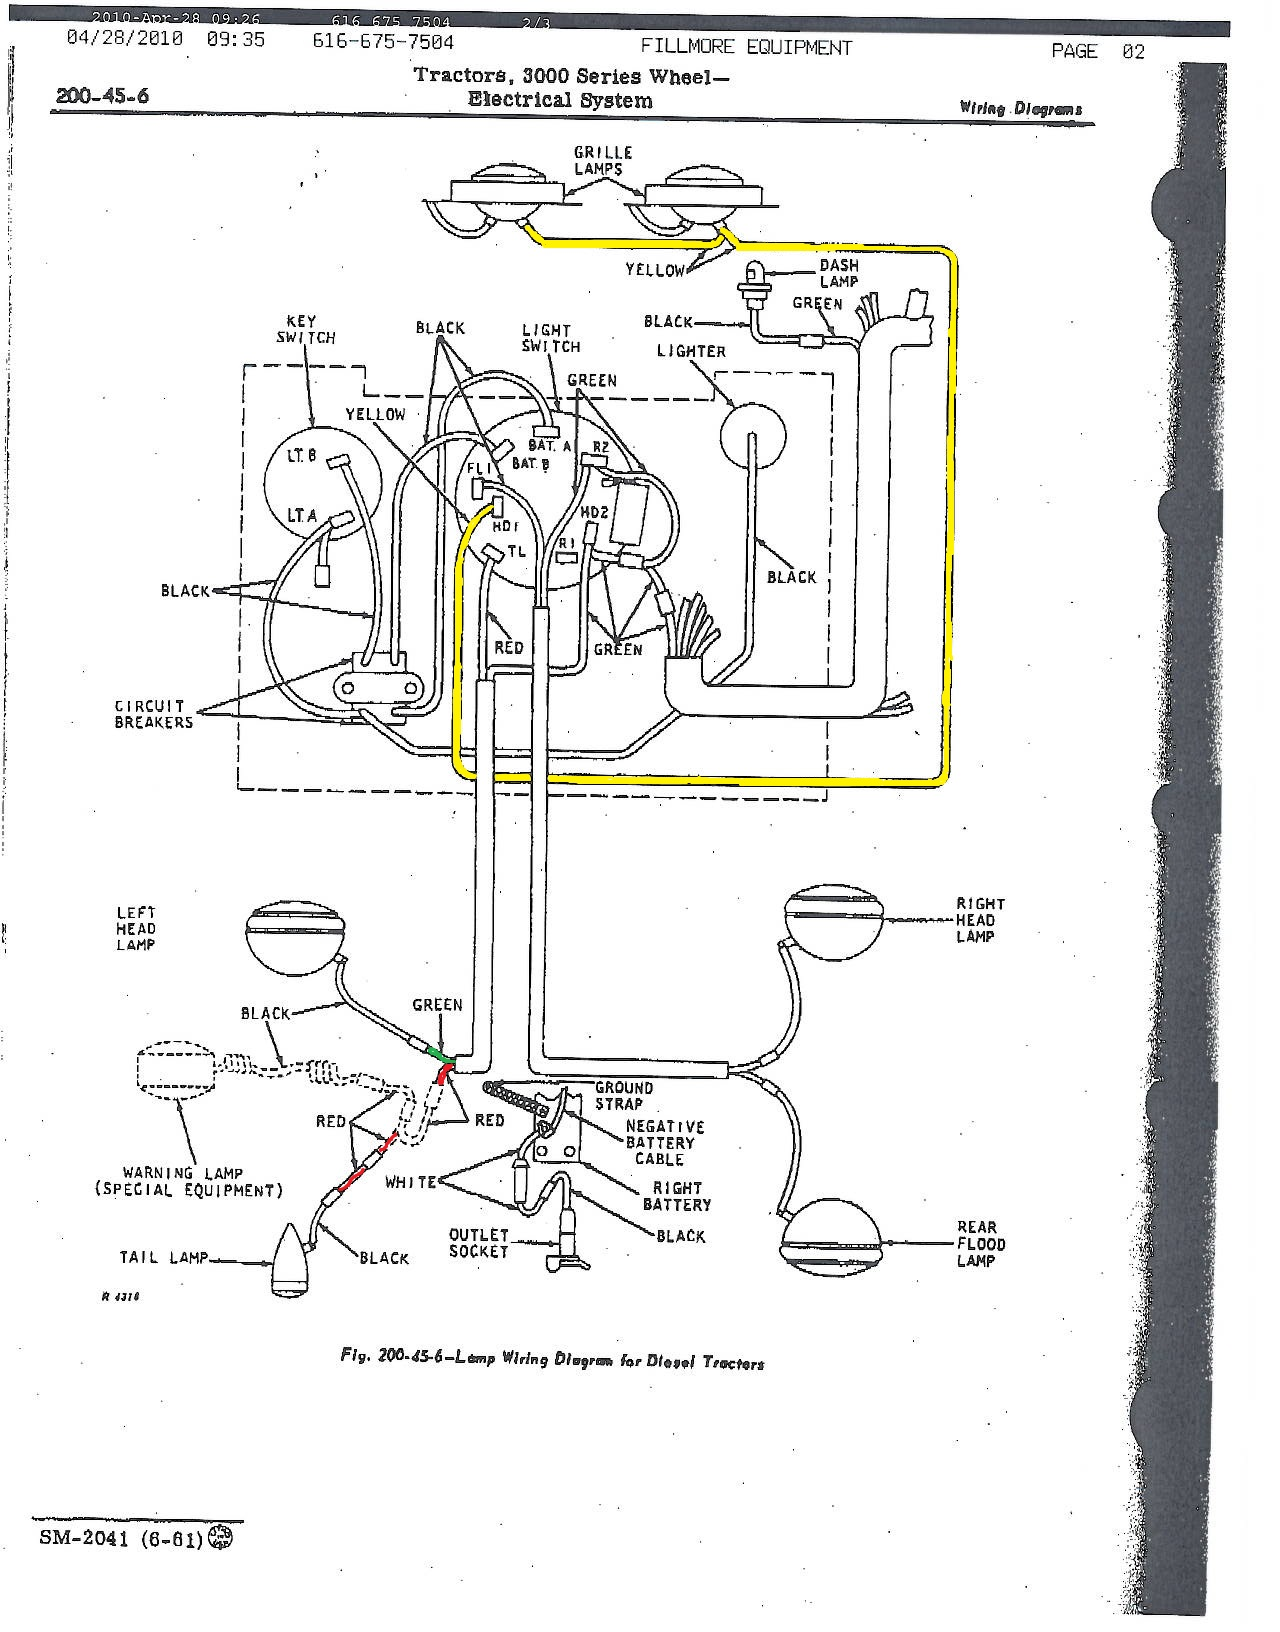 Wiring Diagram 3010 John Deere Tractor Great Design Of Harness Rh Charliemckinley Com Specs